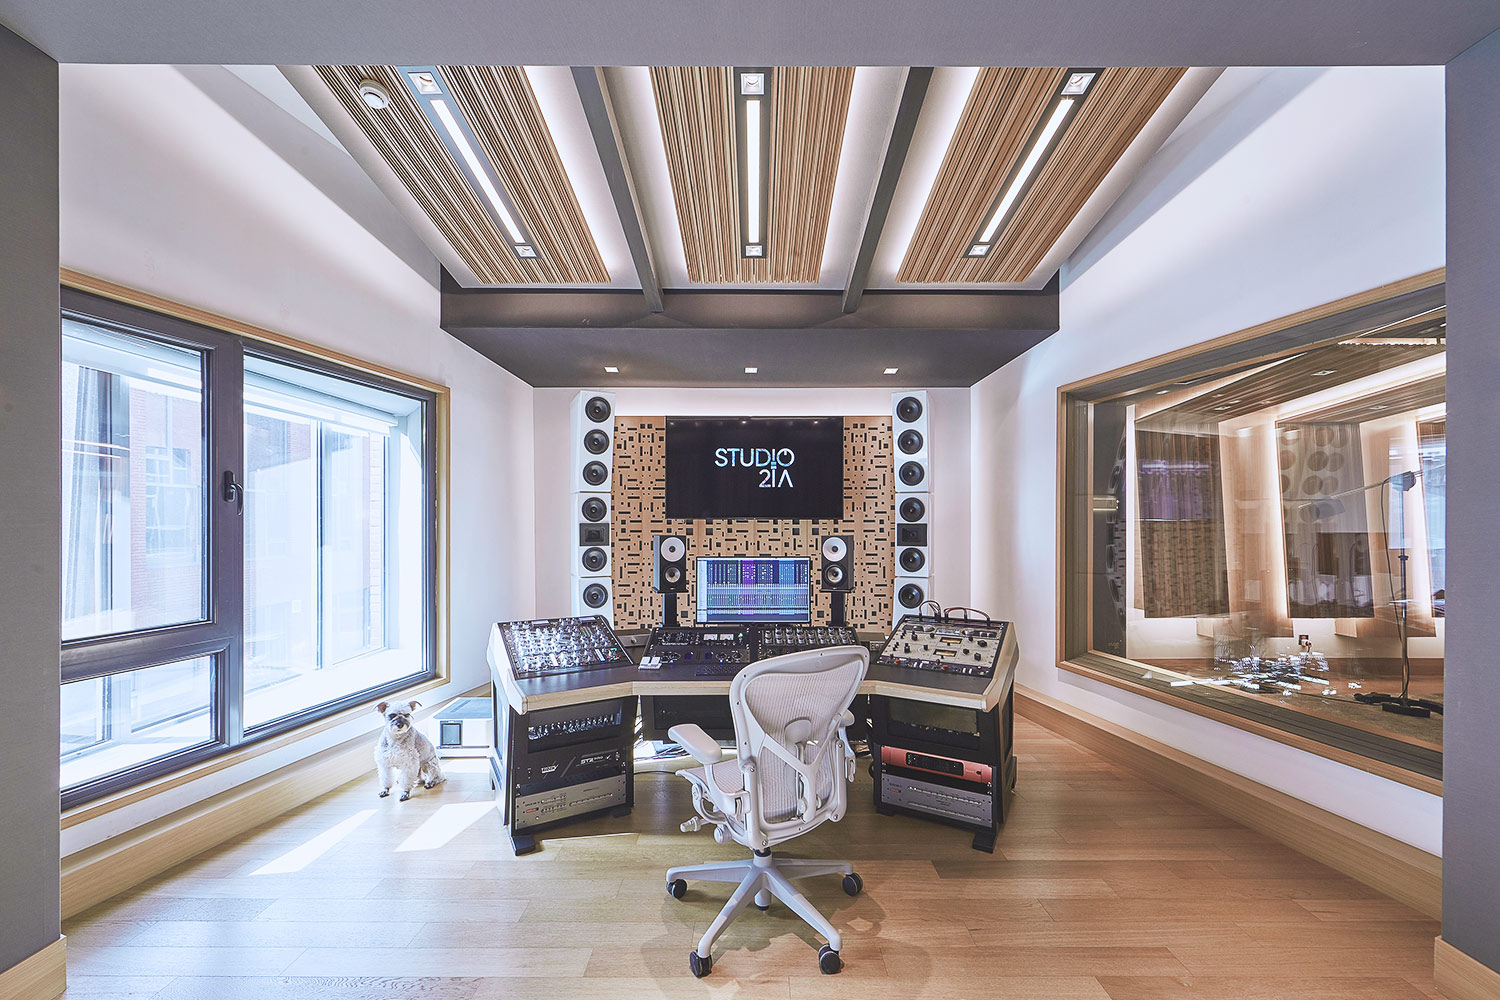 Intrigued by WSDG's reputation in designing the best recording studios in the world, multi-talented recording and mixing engineer TC Zhou started a deep collaboration with our global team for his brand-new Studio 21A facility in Beijing, China. Control Room C Mastering Wide.